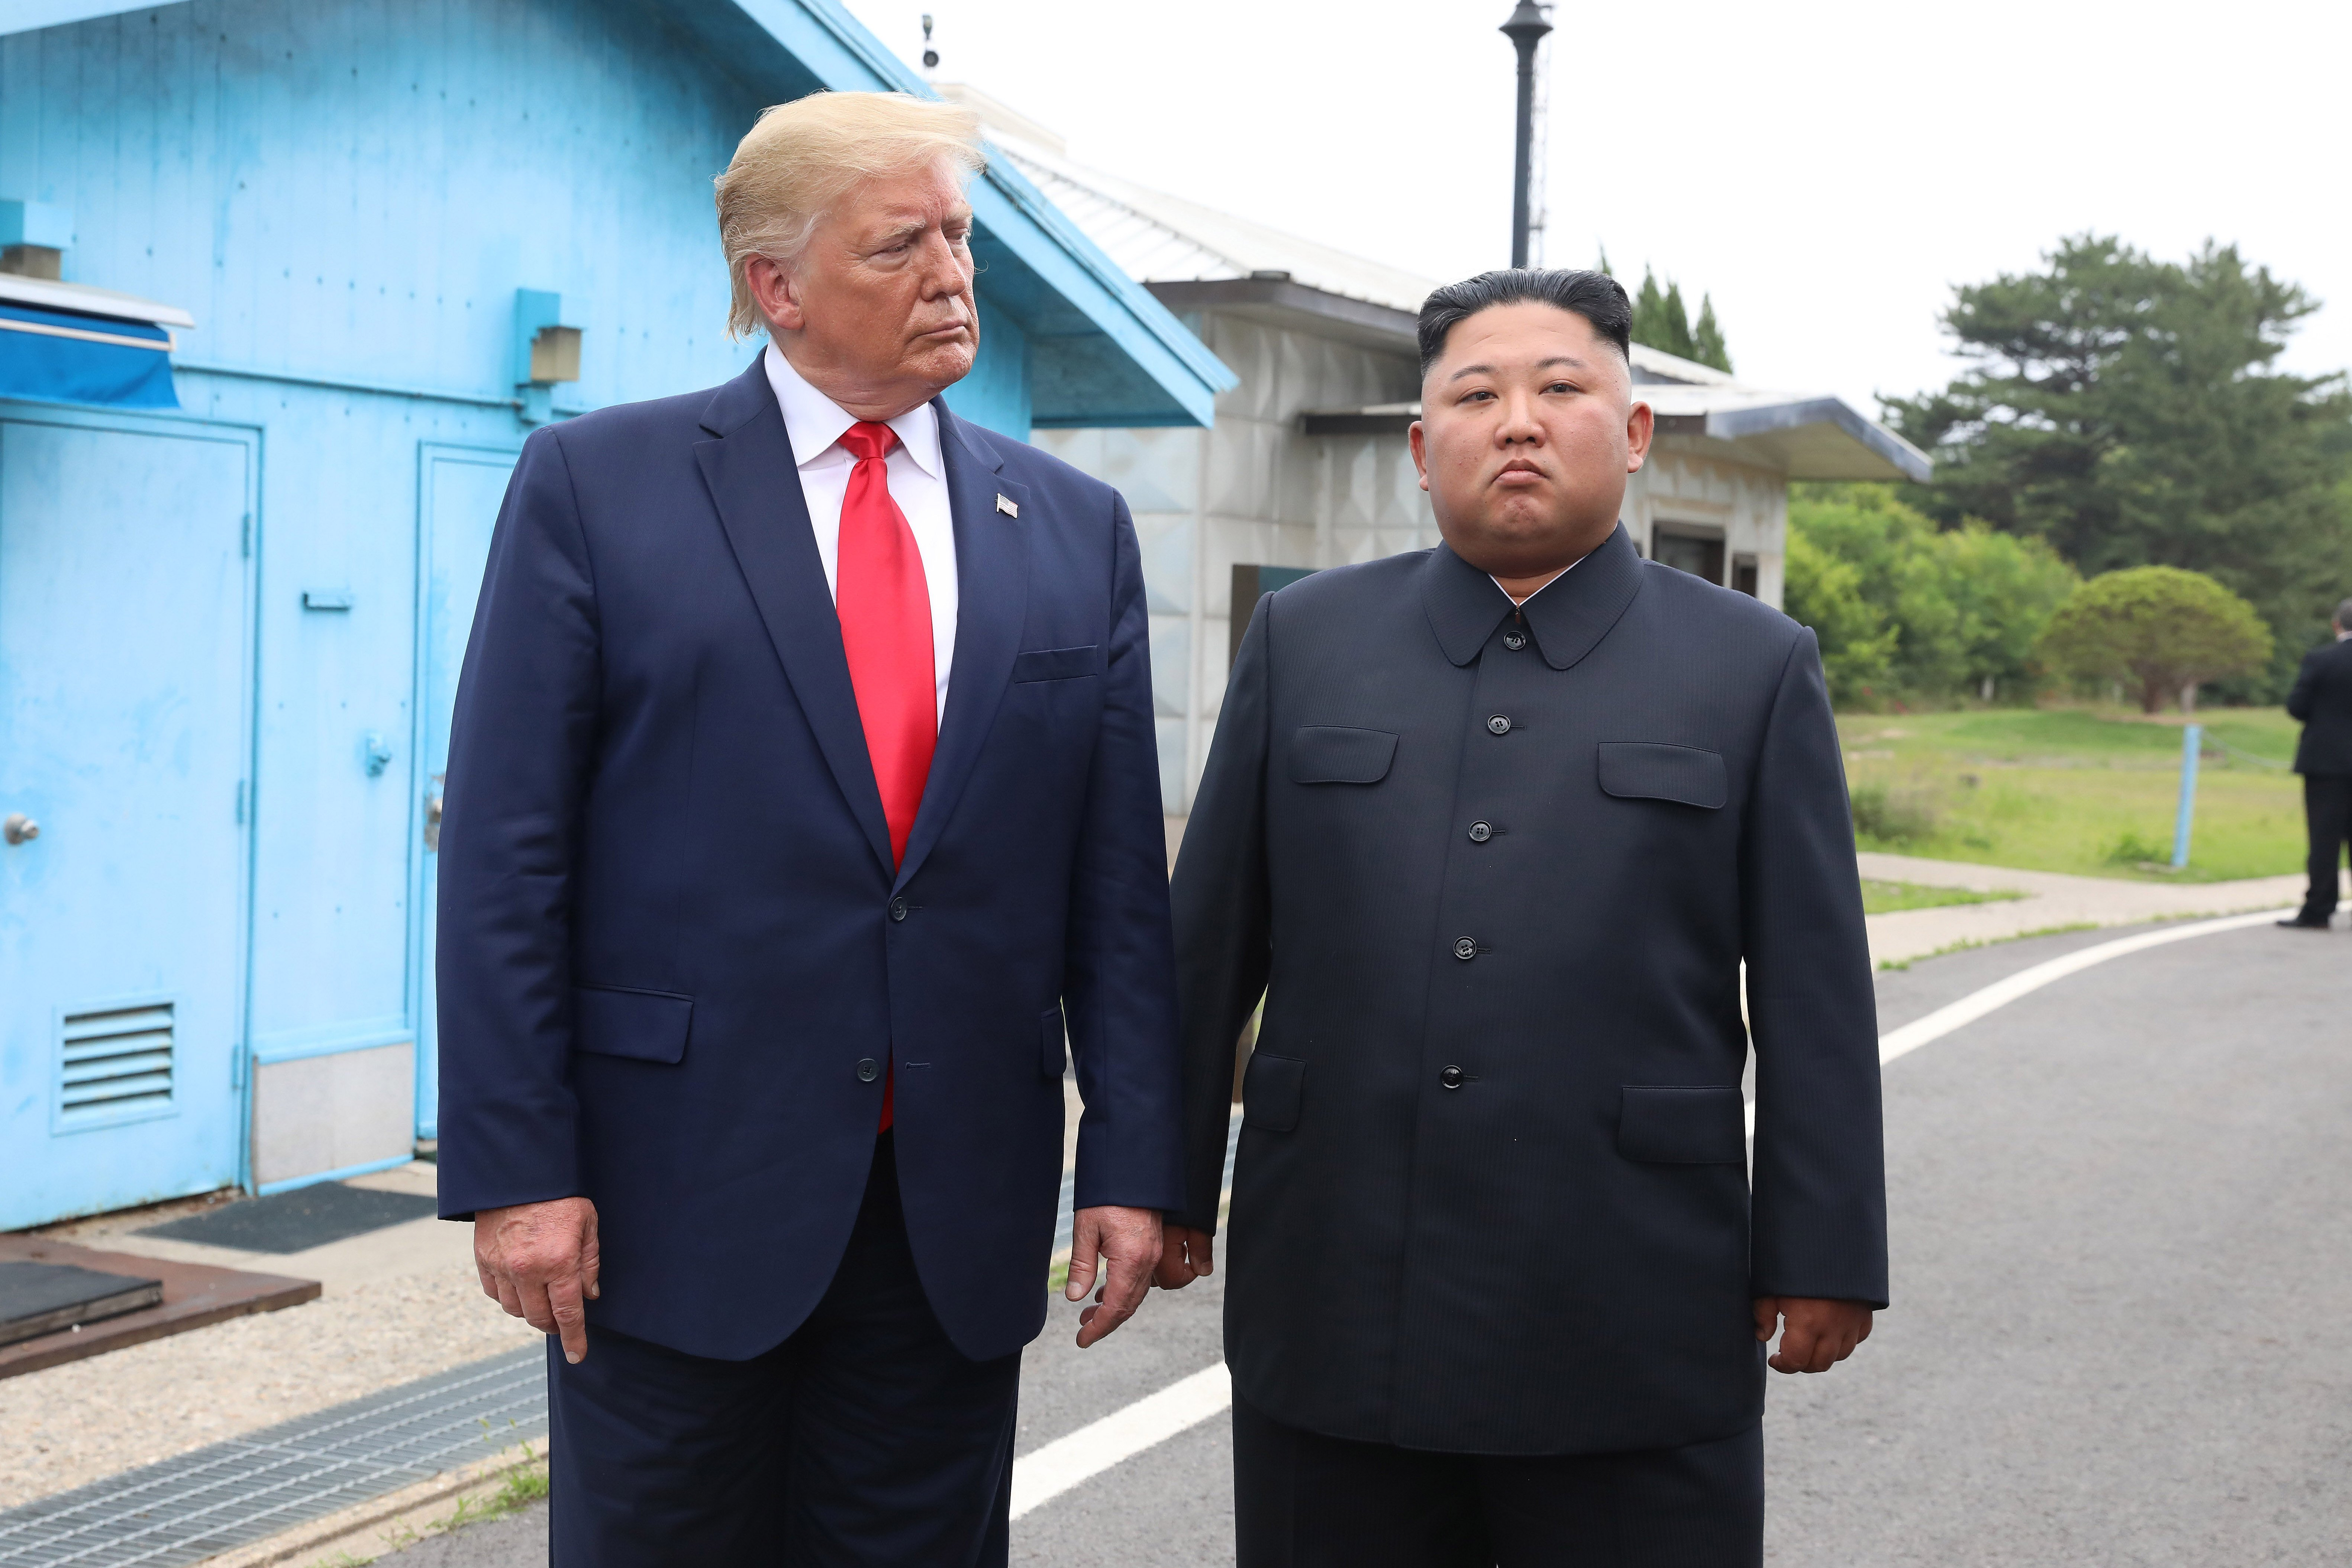 Donald Trump and Kim Jong-un posing for the cameras at the Korean demilitarized zone | Photo: Getty Images